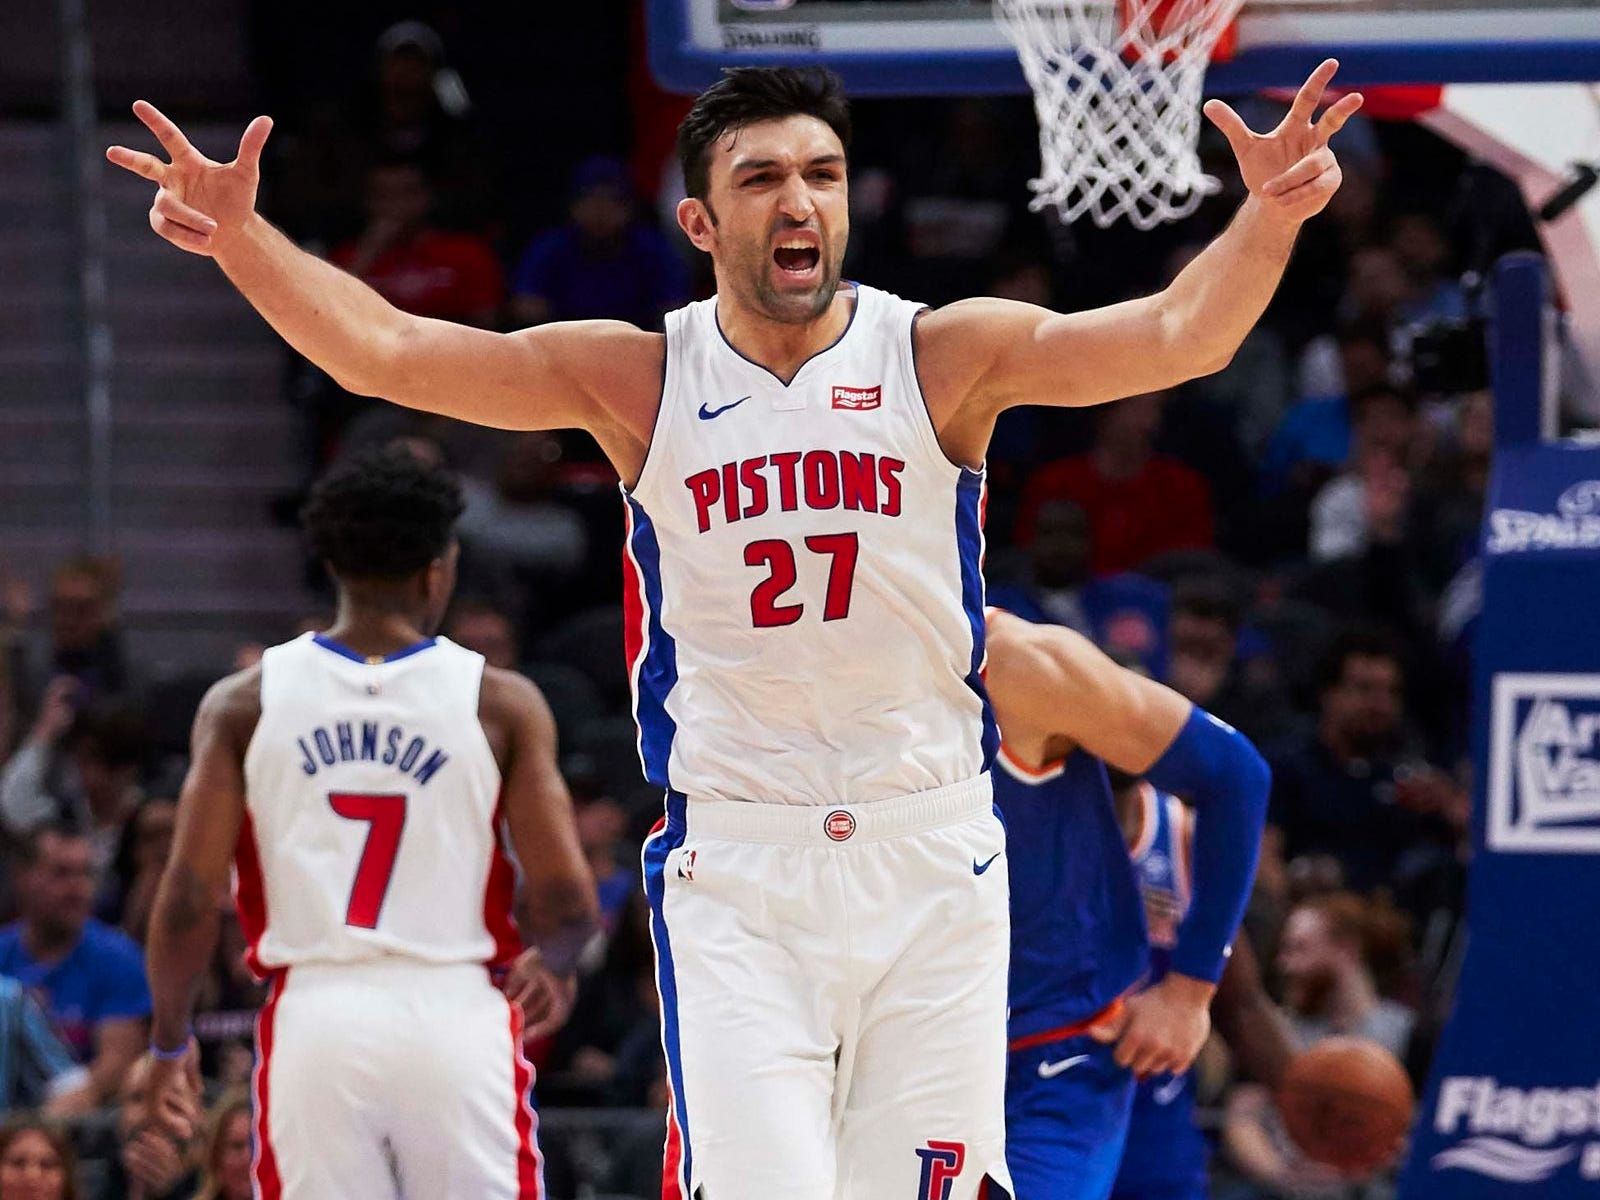 Detroit Pistons center Zaza Pachulia (27) reacts to a three point basket by guard Ish Smith (not pictured) in the second half against the New York Knicks at Little Caesars Arena.